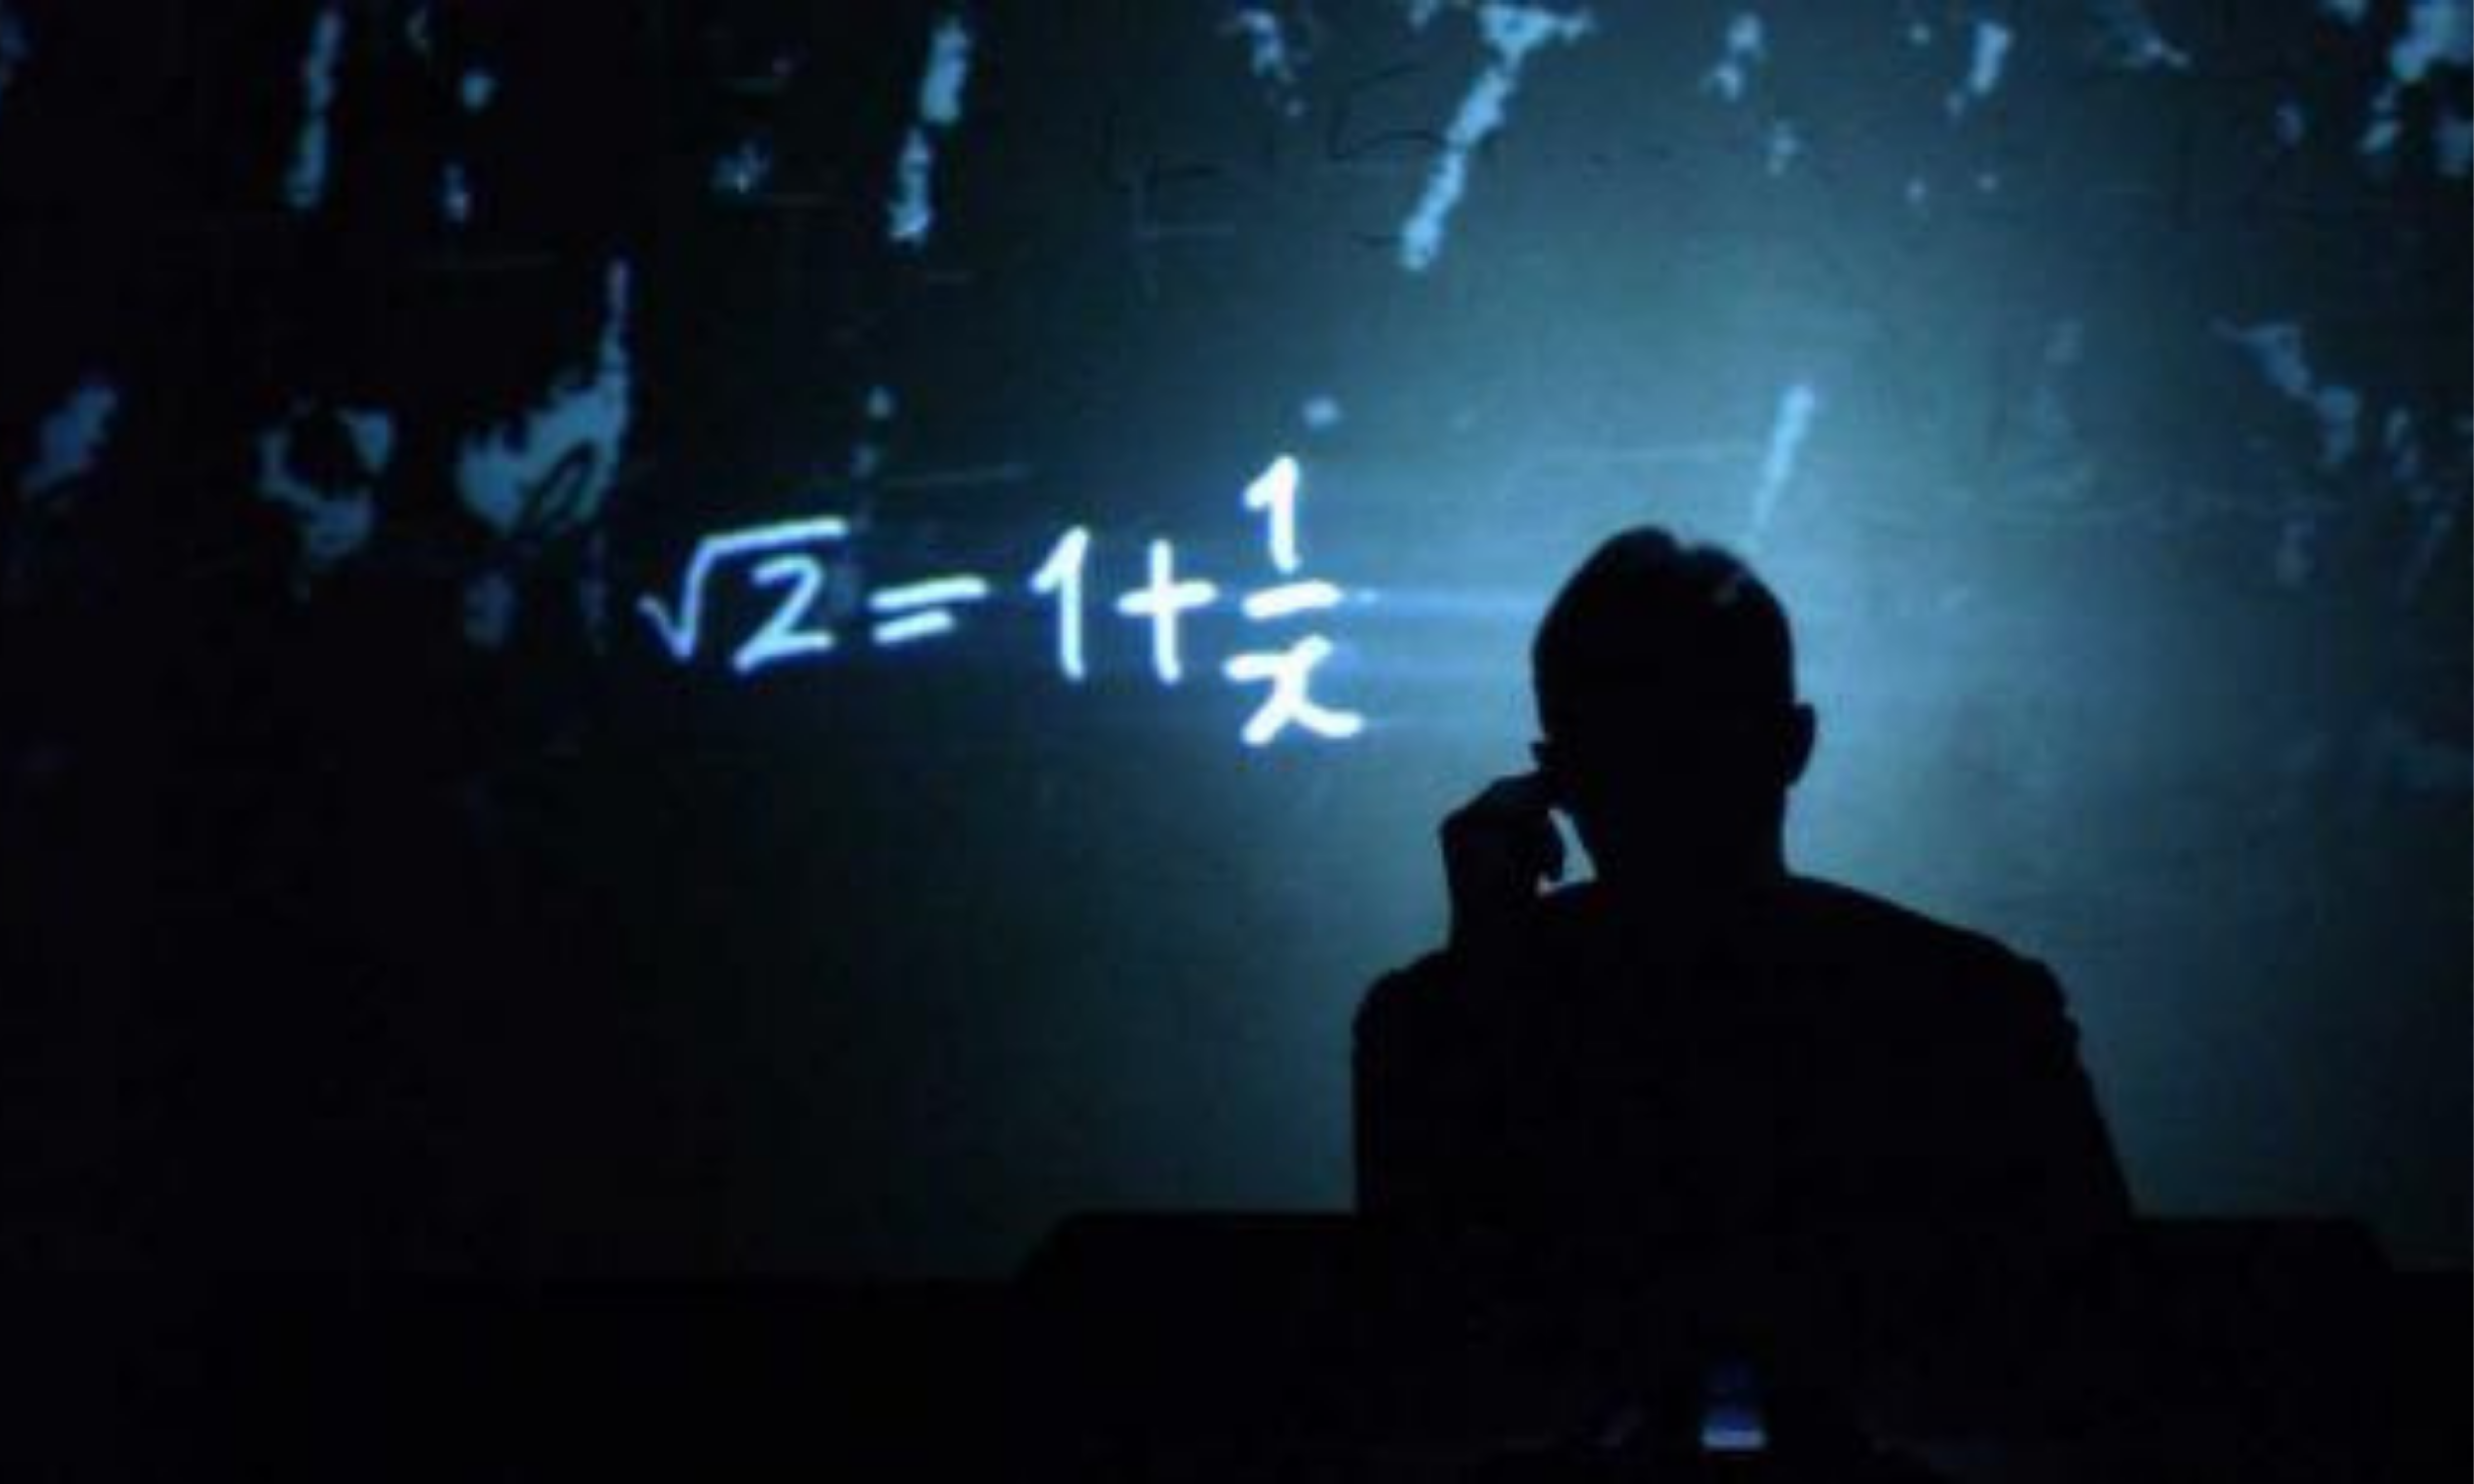 A mathematical sum is projected with a shadowy figure infront of it in Complicité A Disappearing Number.